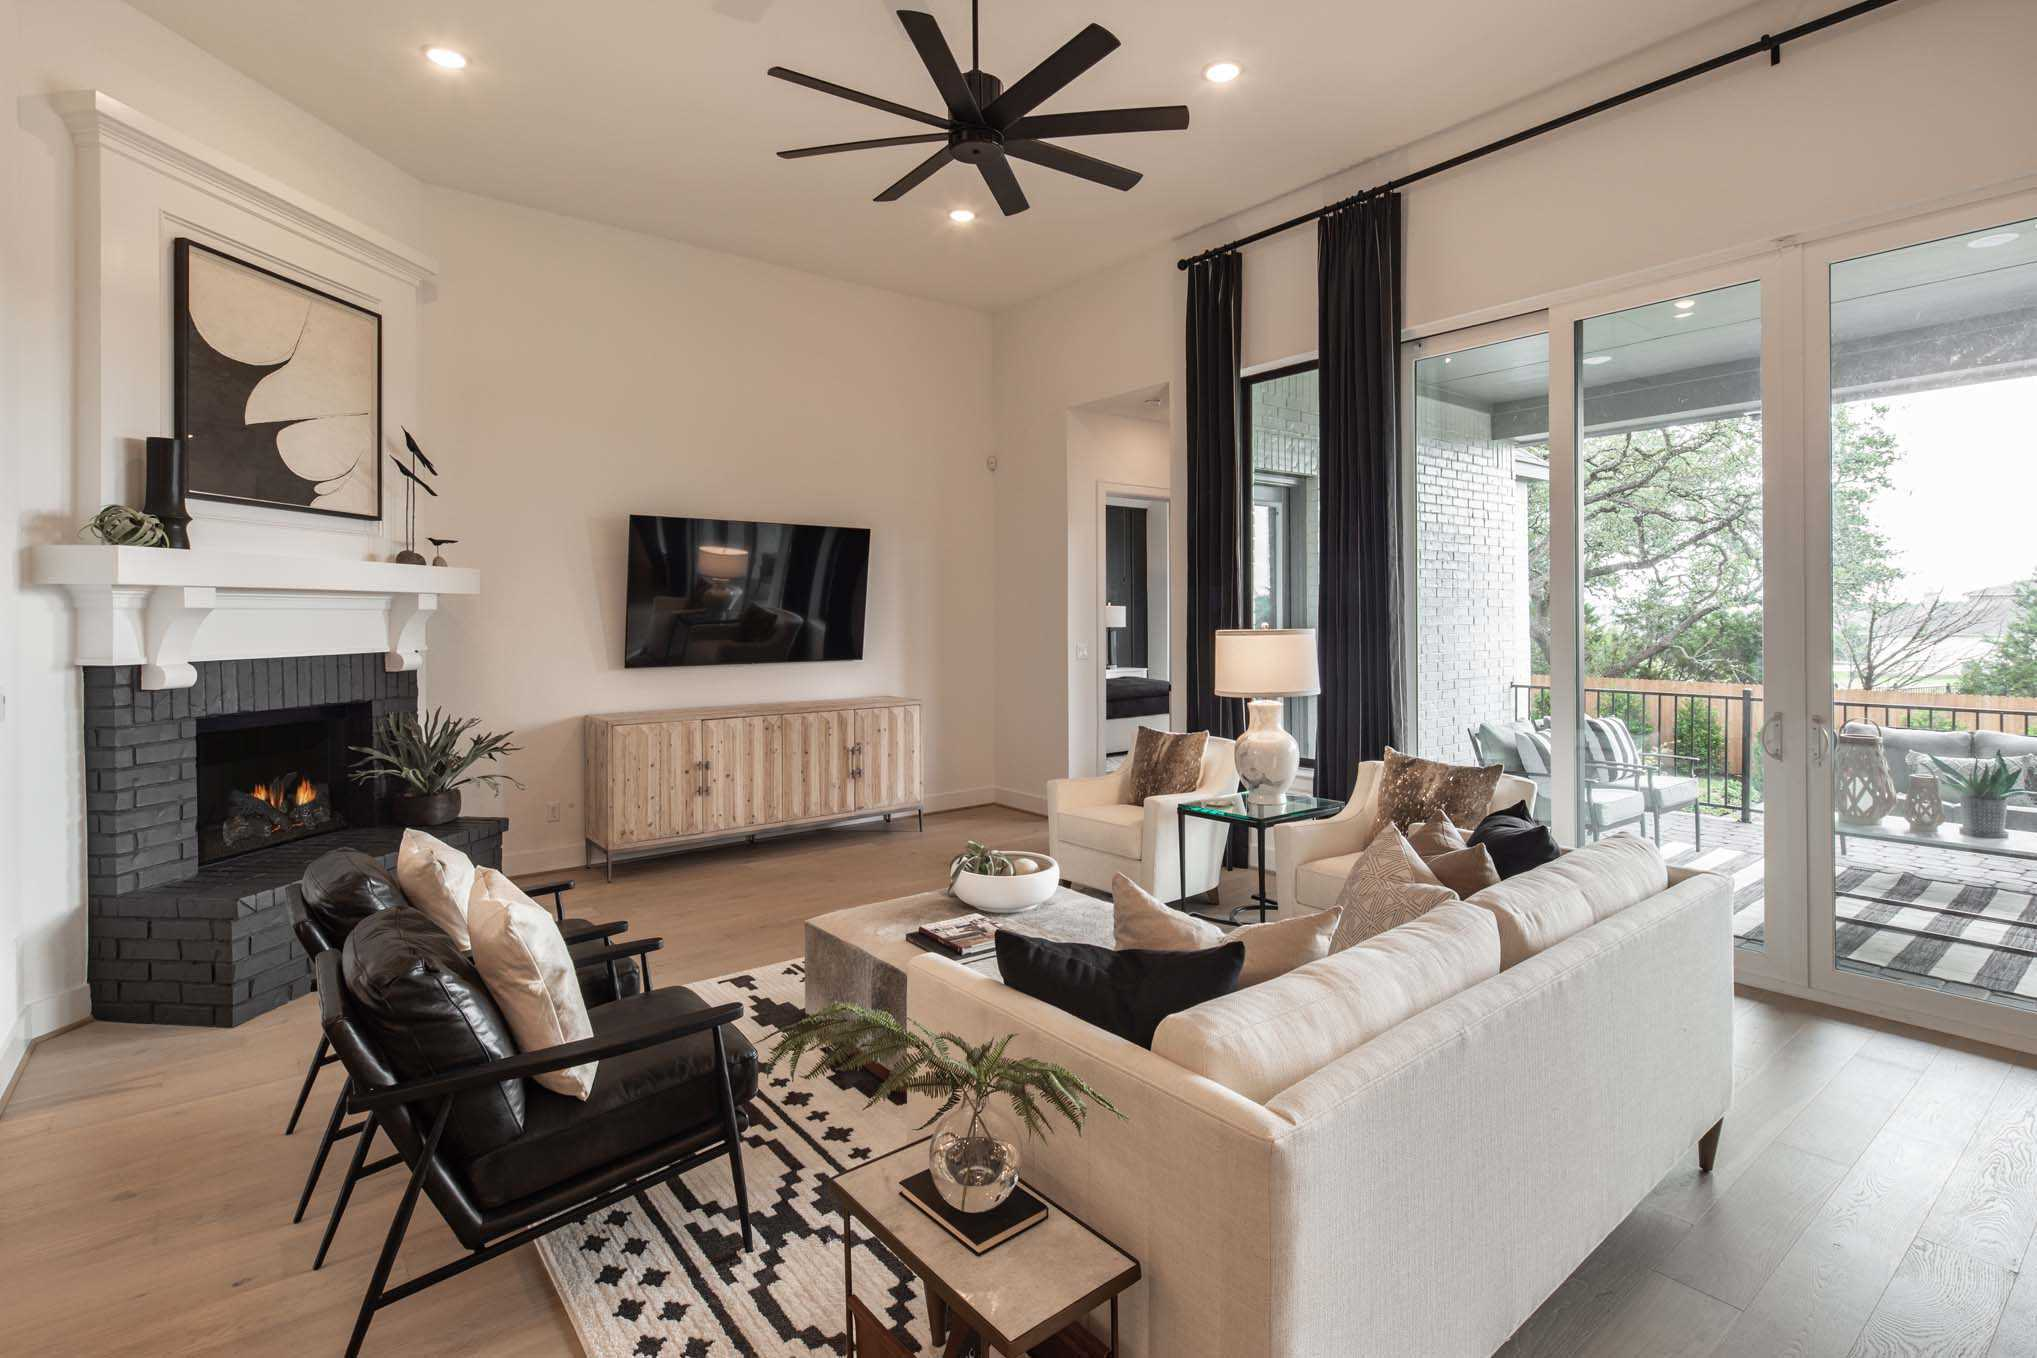 Living Area featured in the Plan 272 By Highland Homes in Dallas, TX